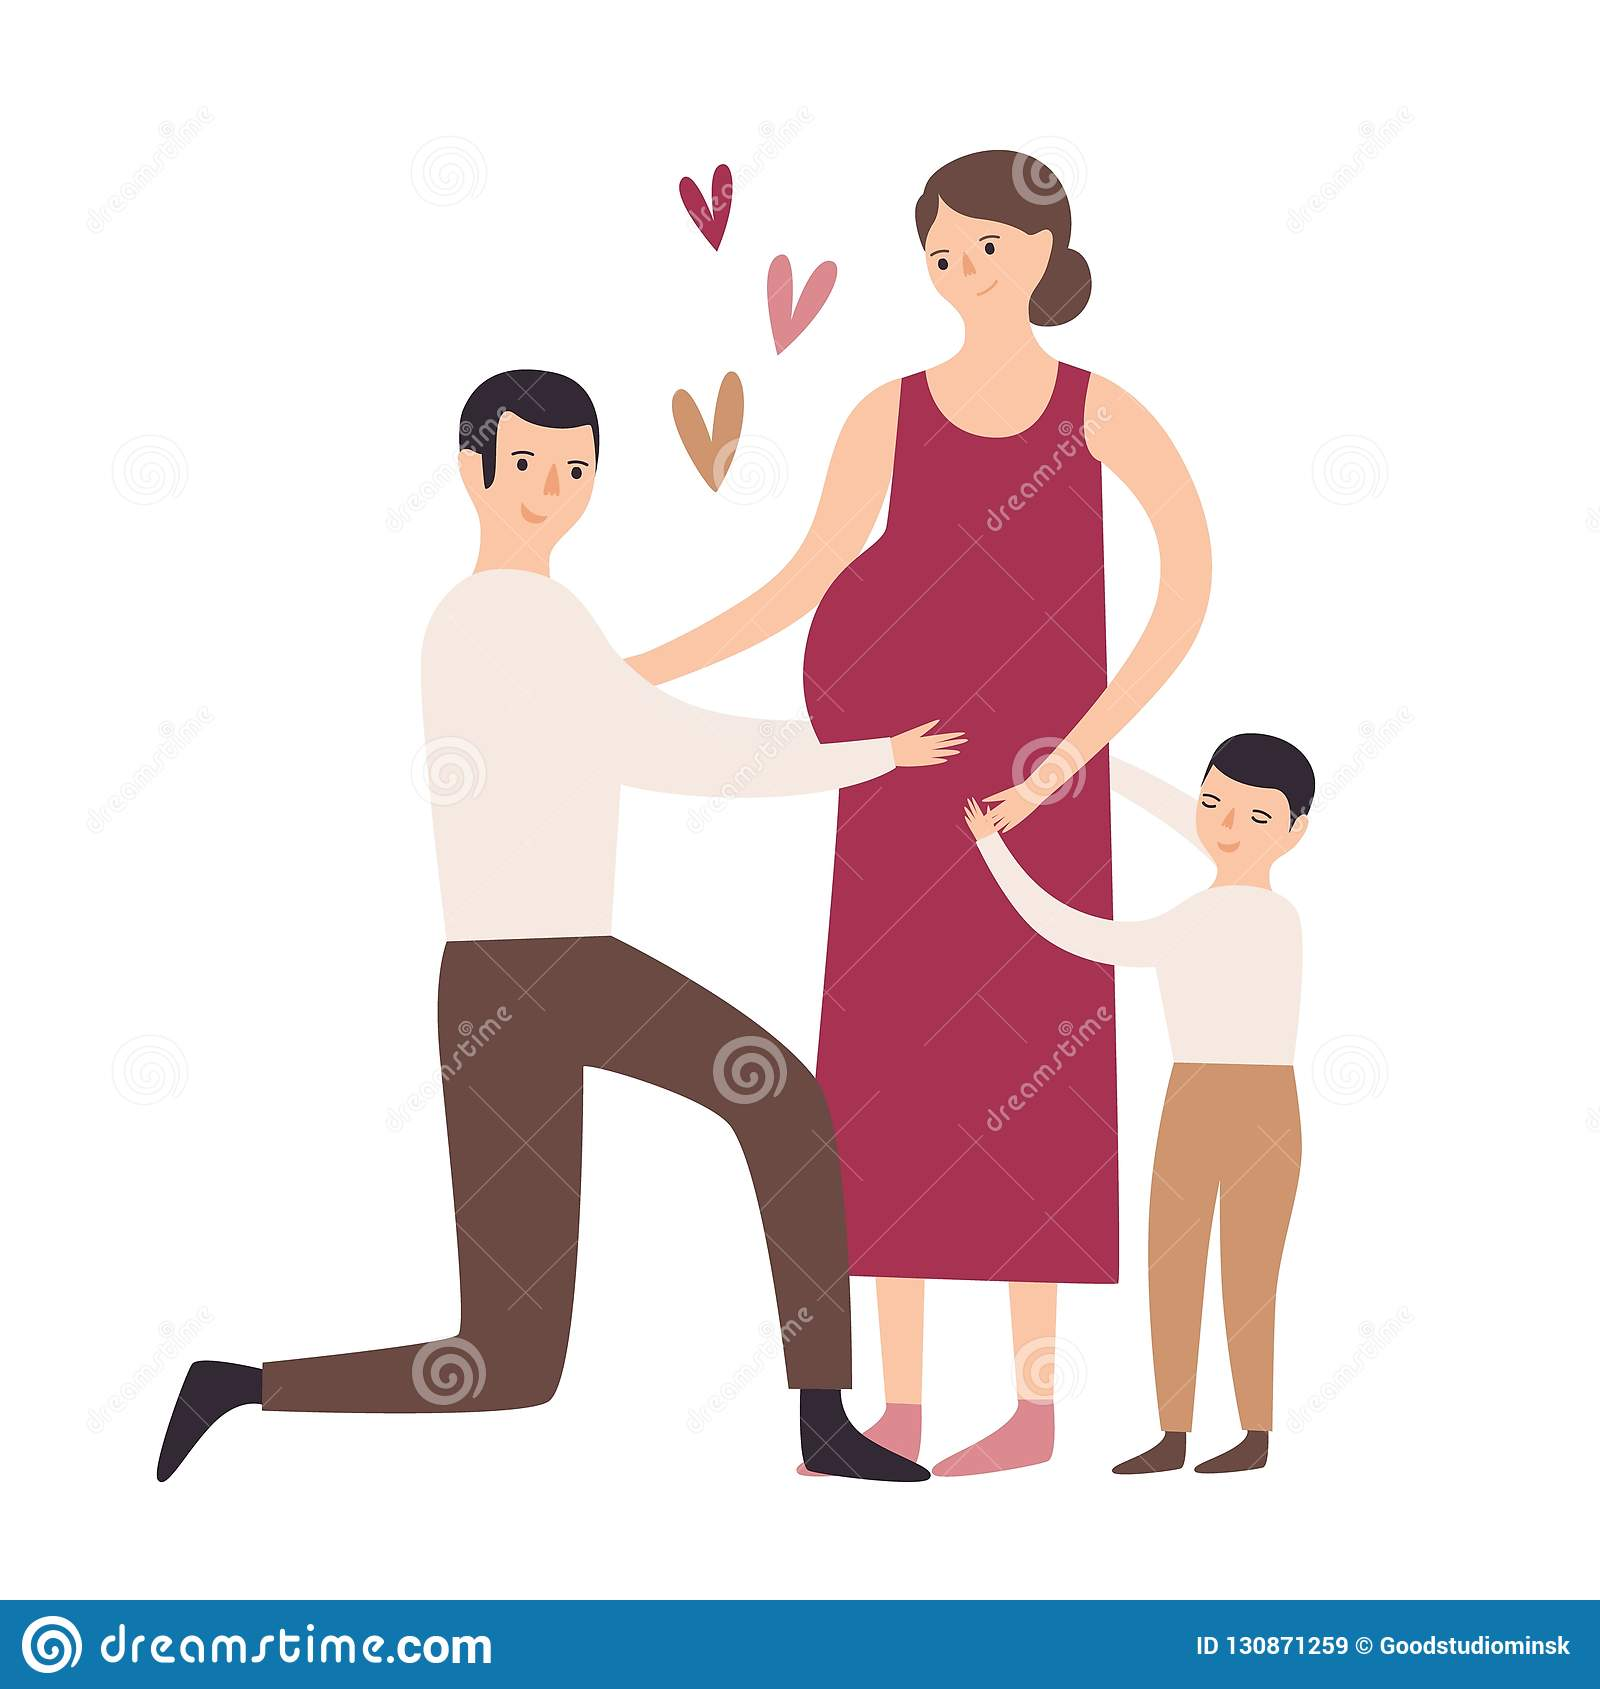 Happy family. Son hugging pregnant mother, father standing on knee and touching her belly. Pregnancy and motherhood